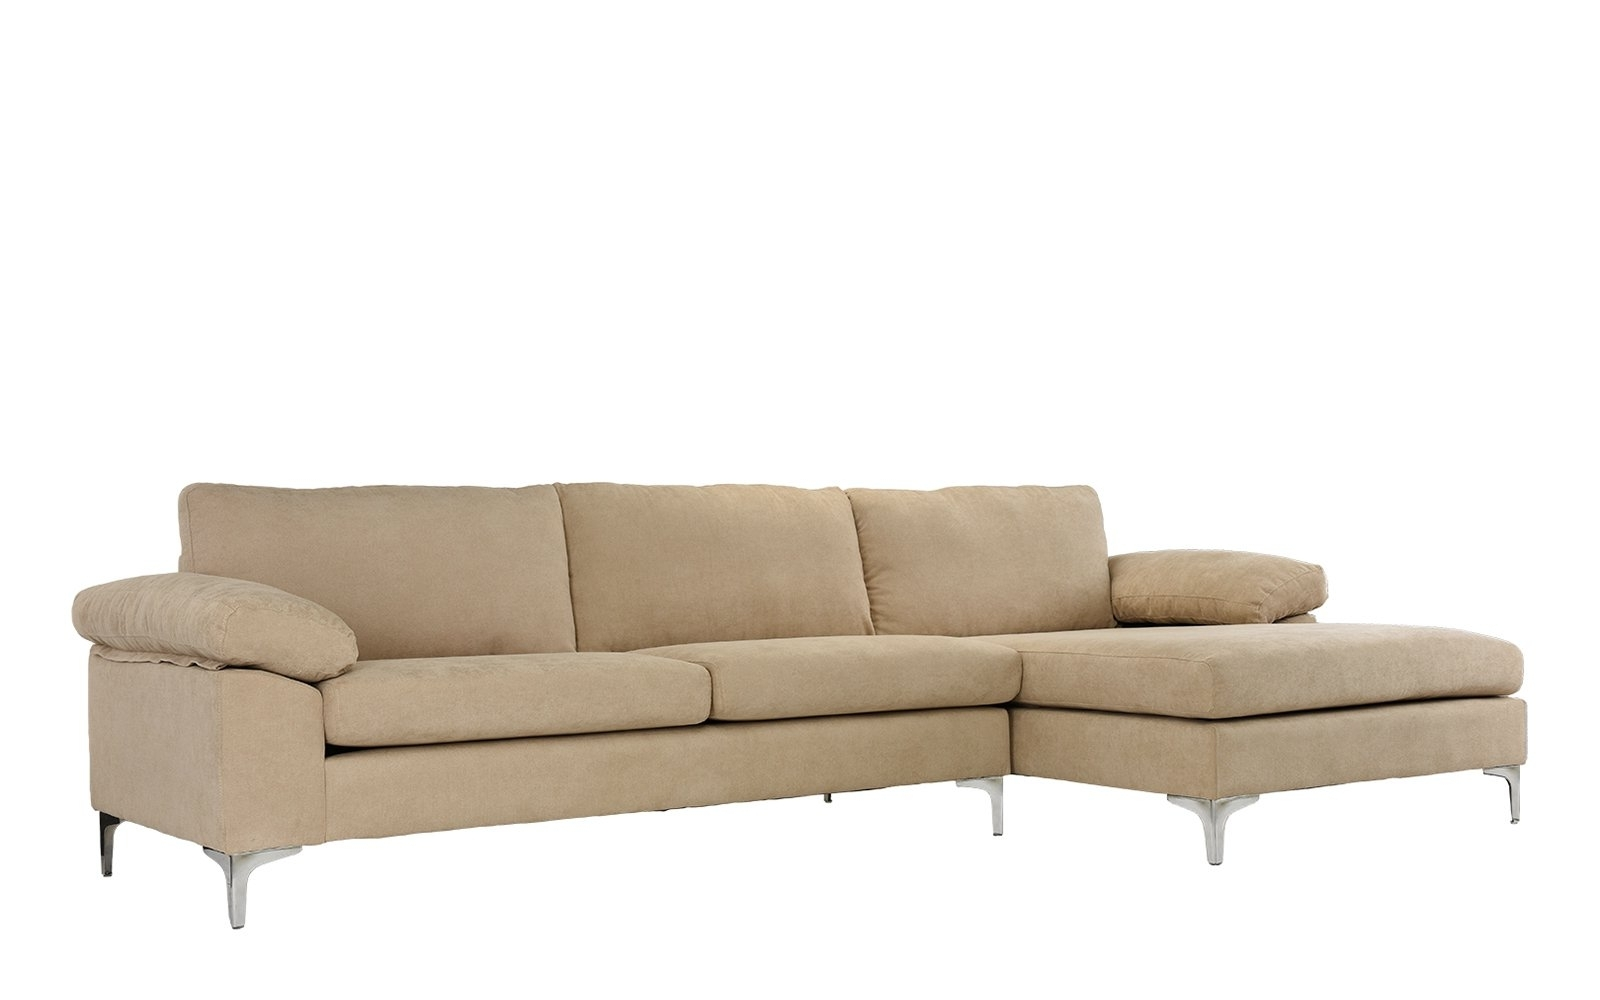 Gta Sectional Sofas Regarding Popular Best Free Modern Sectional Sofa Gta # (View 6 of 15)